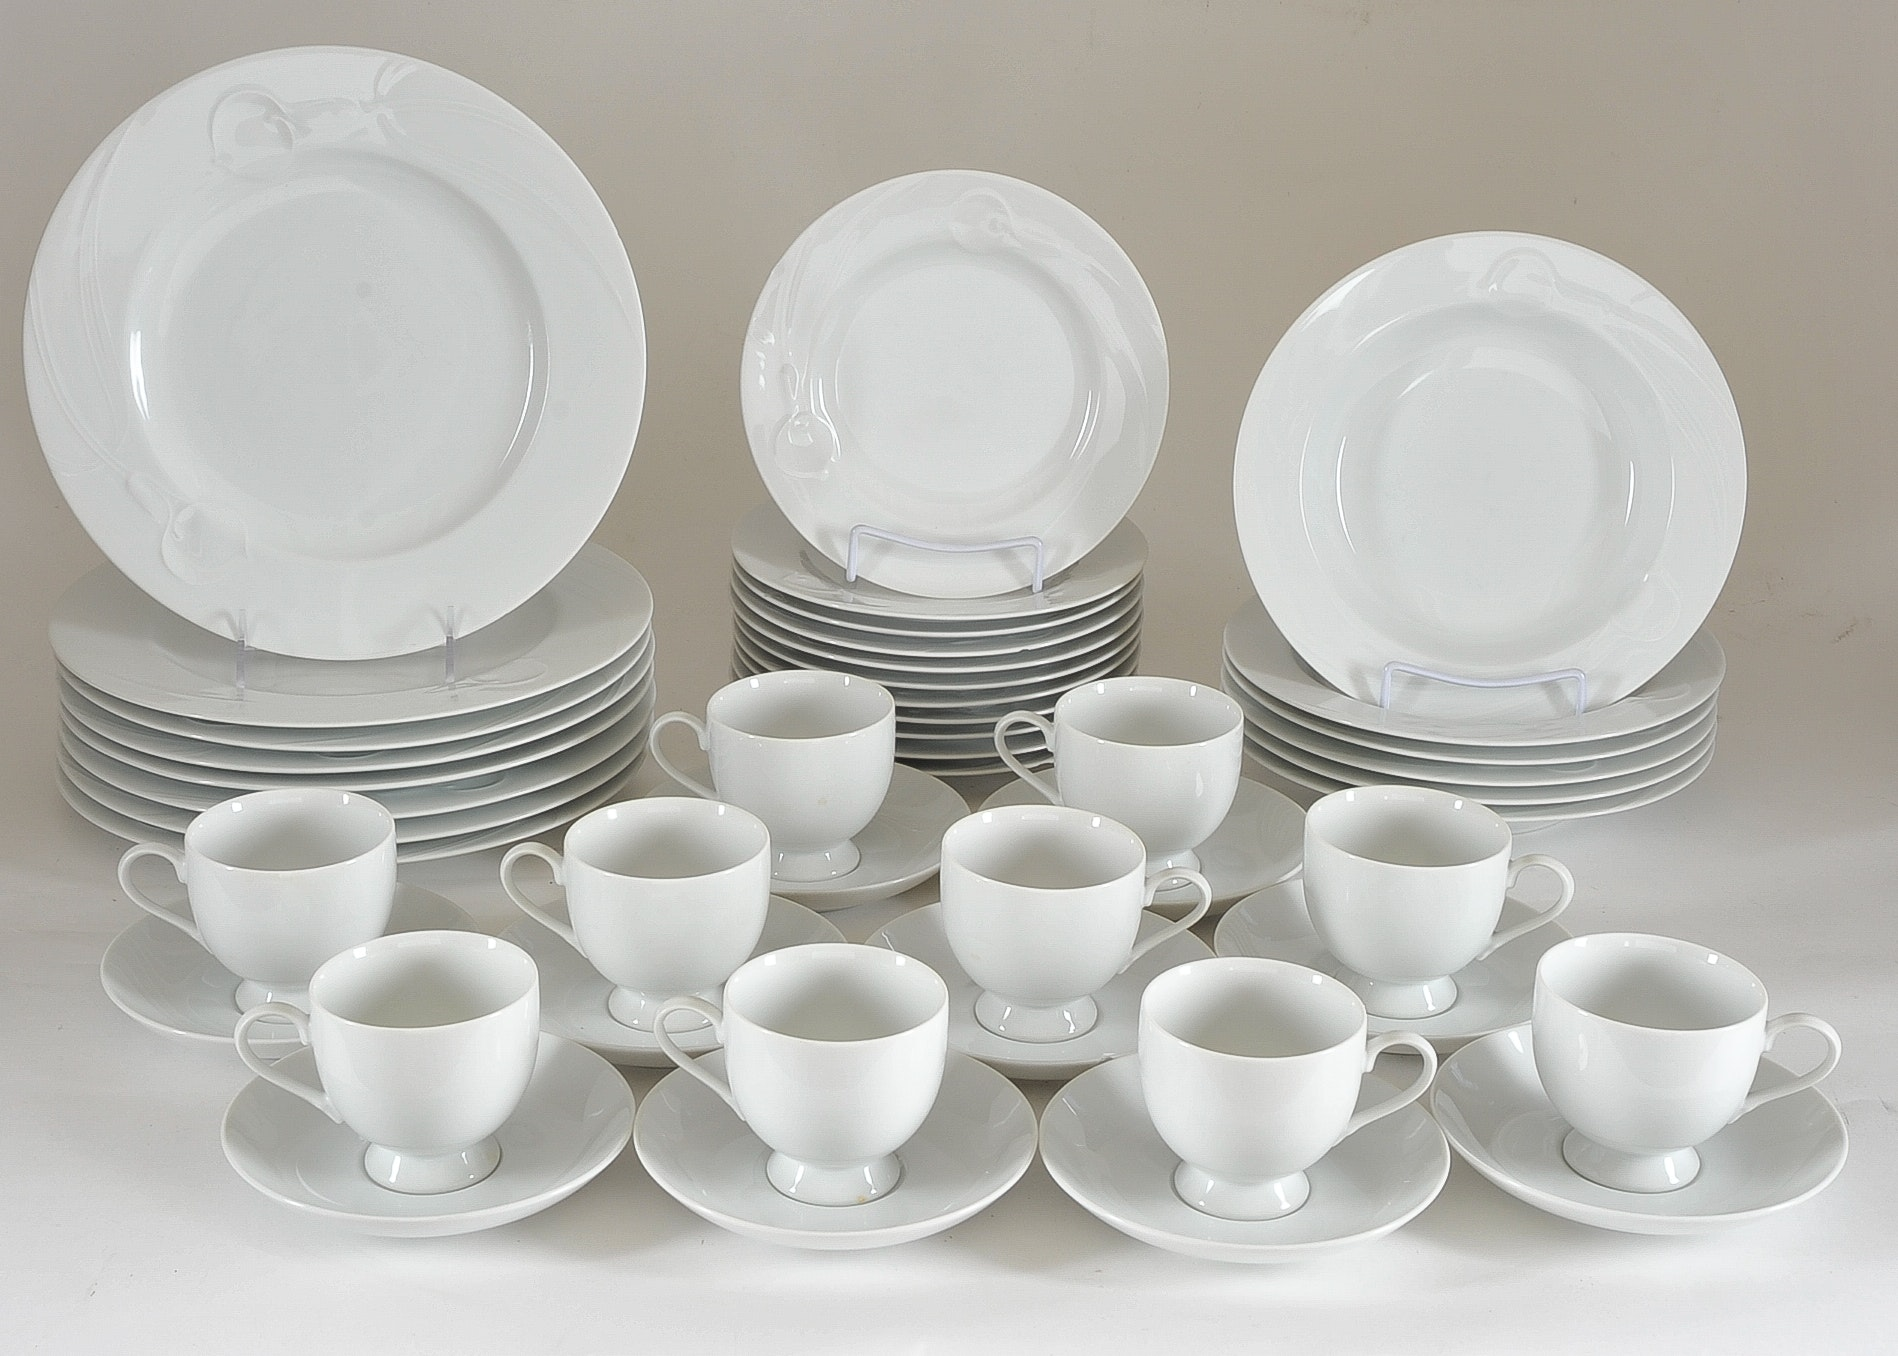 Mikasa Classic Flair Fine China Set ... & Mikasa Classic Flair Fine China Set : EBTH